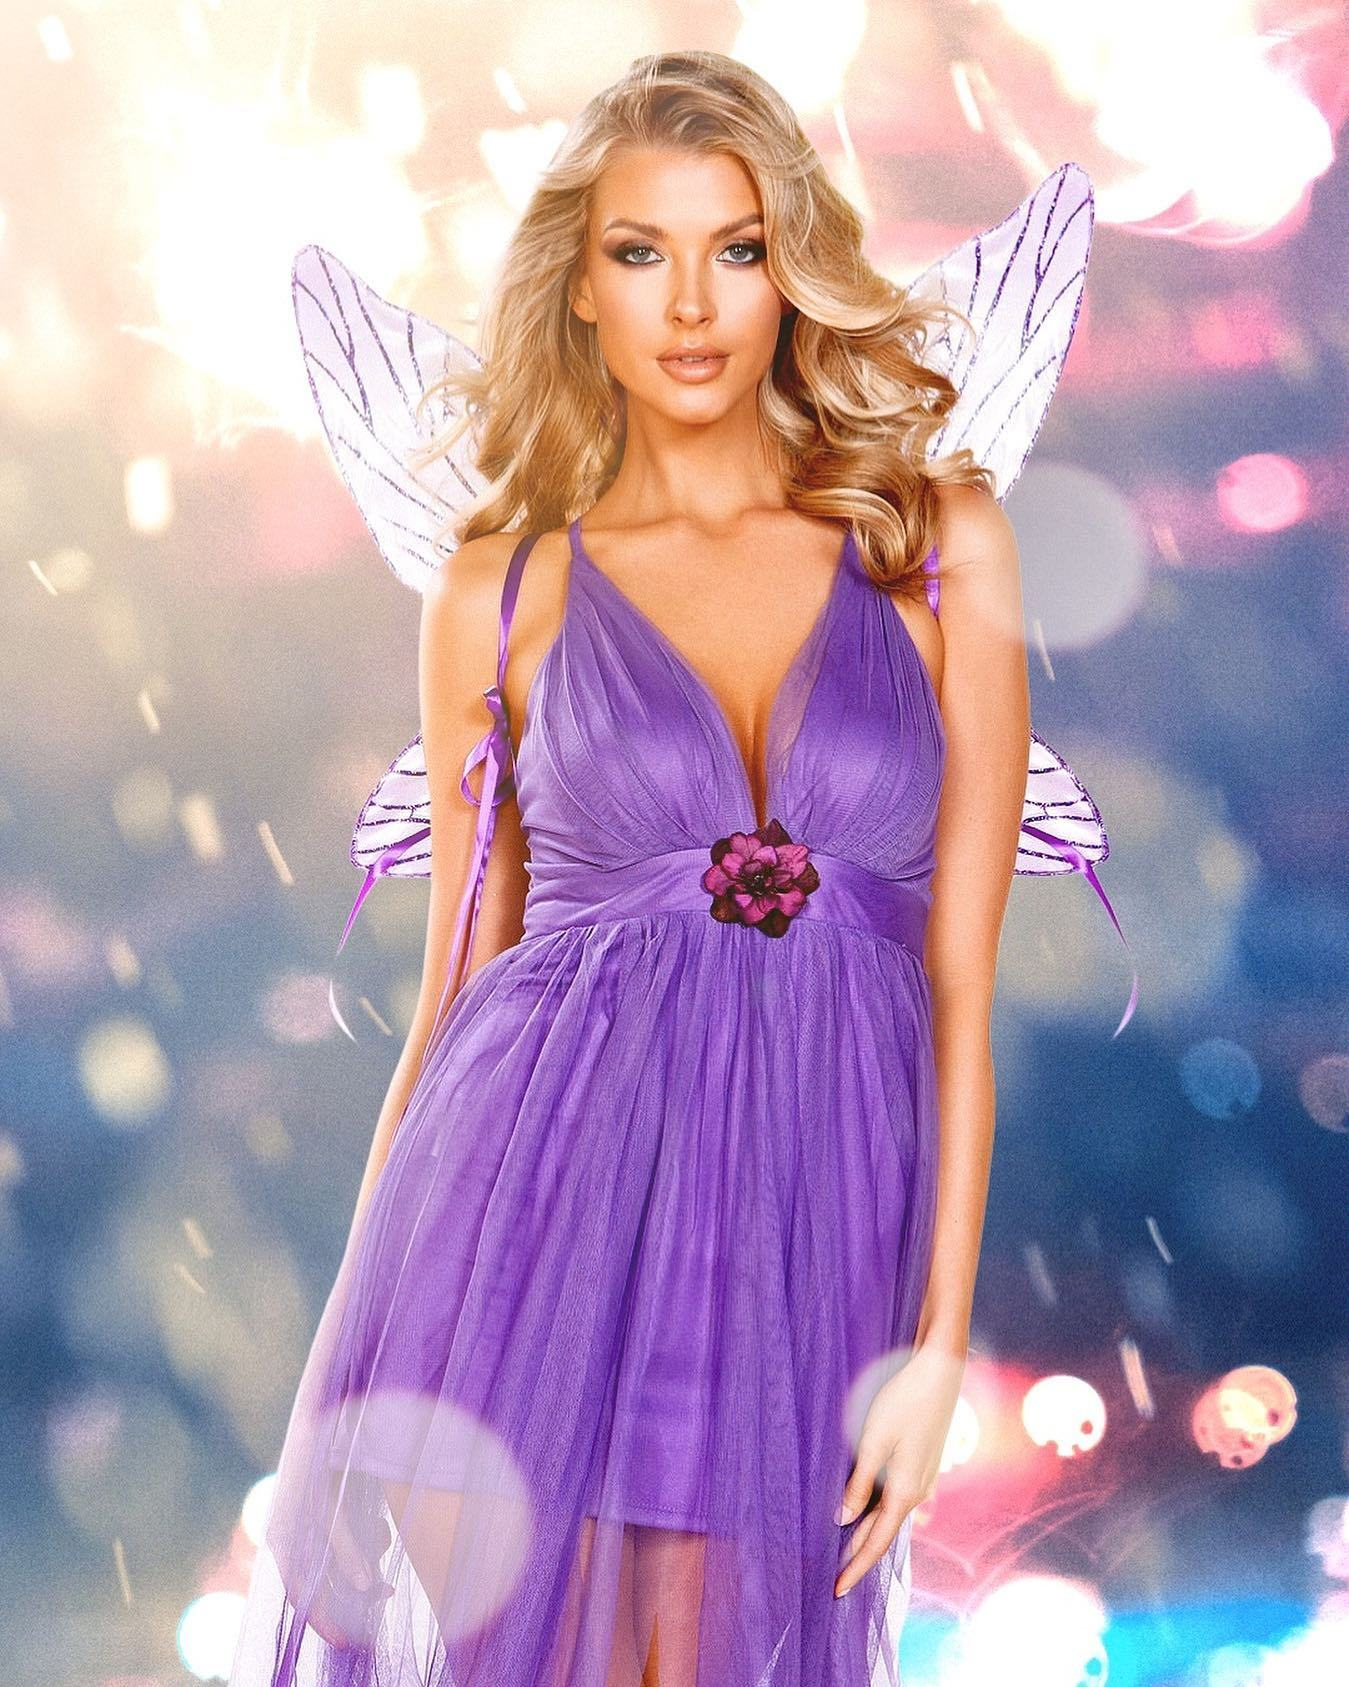 2pc Lilac Fairy Includes Maxi Length Flair Dress with Lining Dress and Flower Detail, & Wings